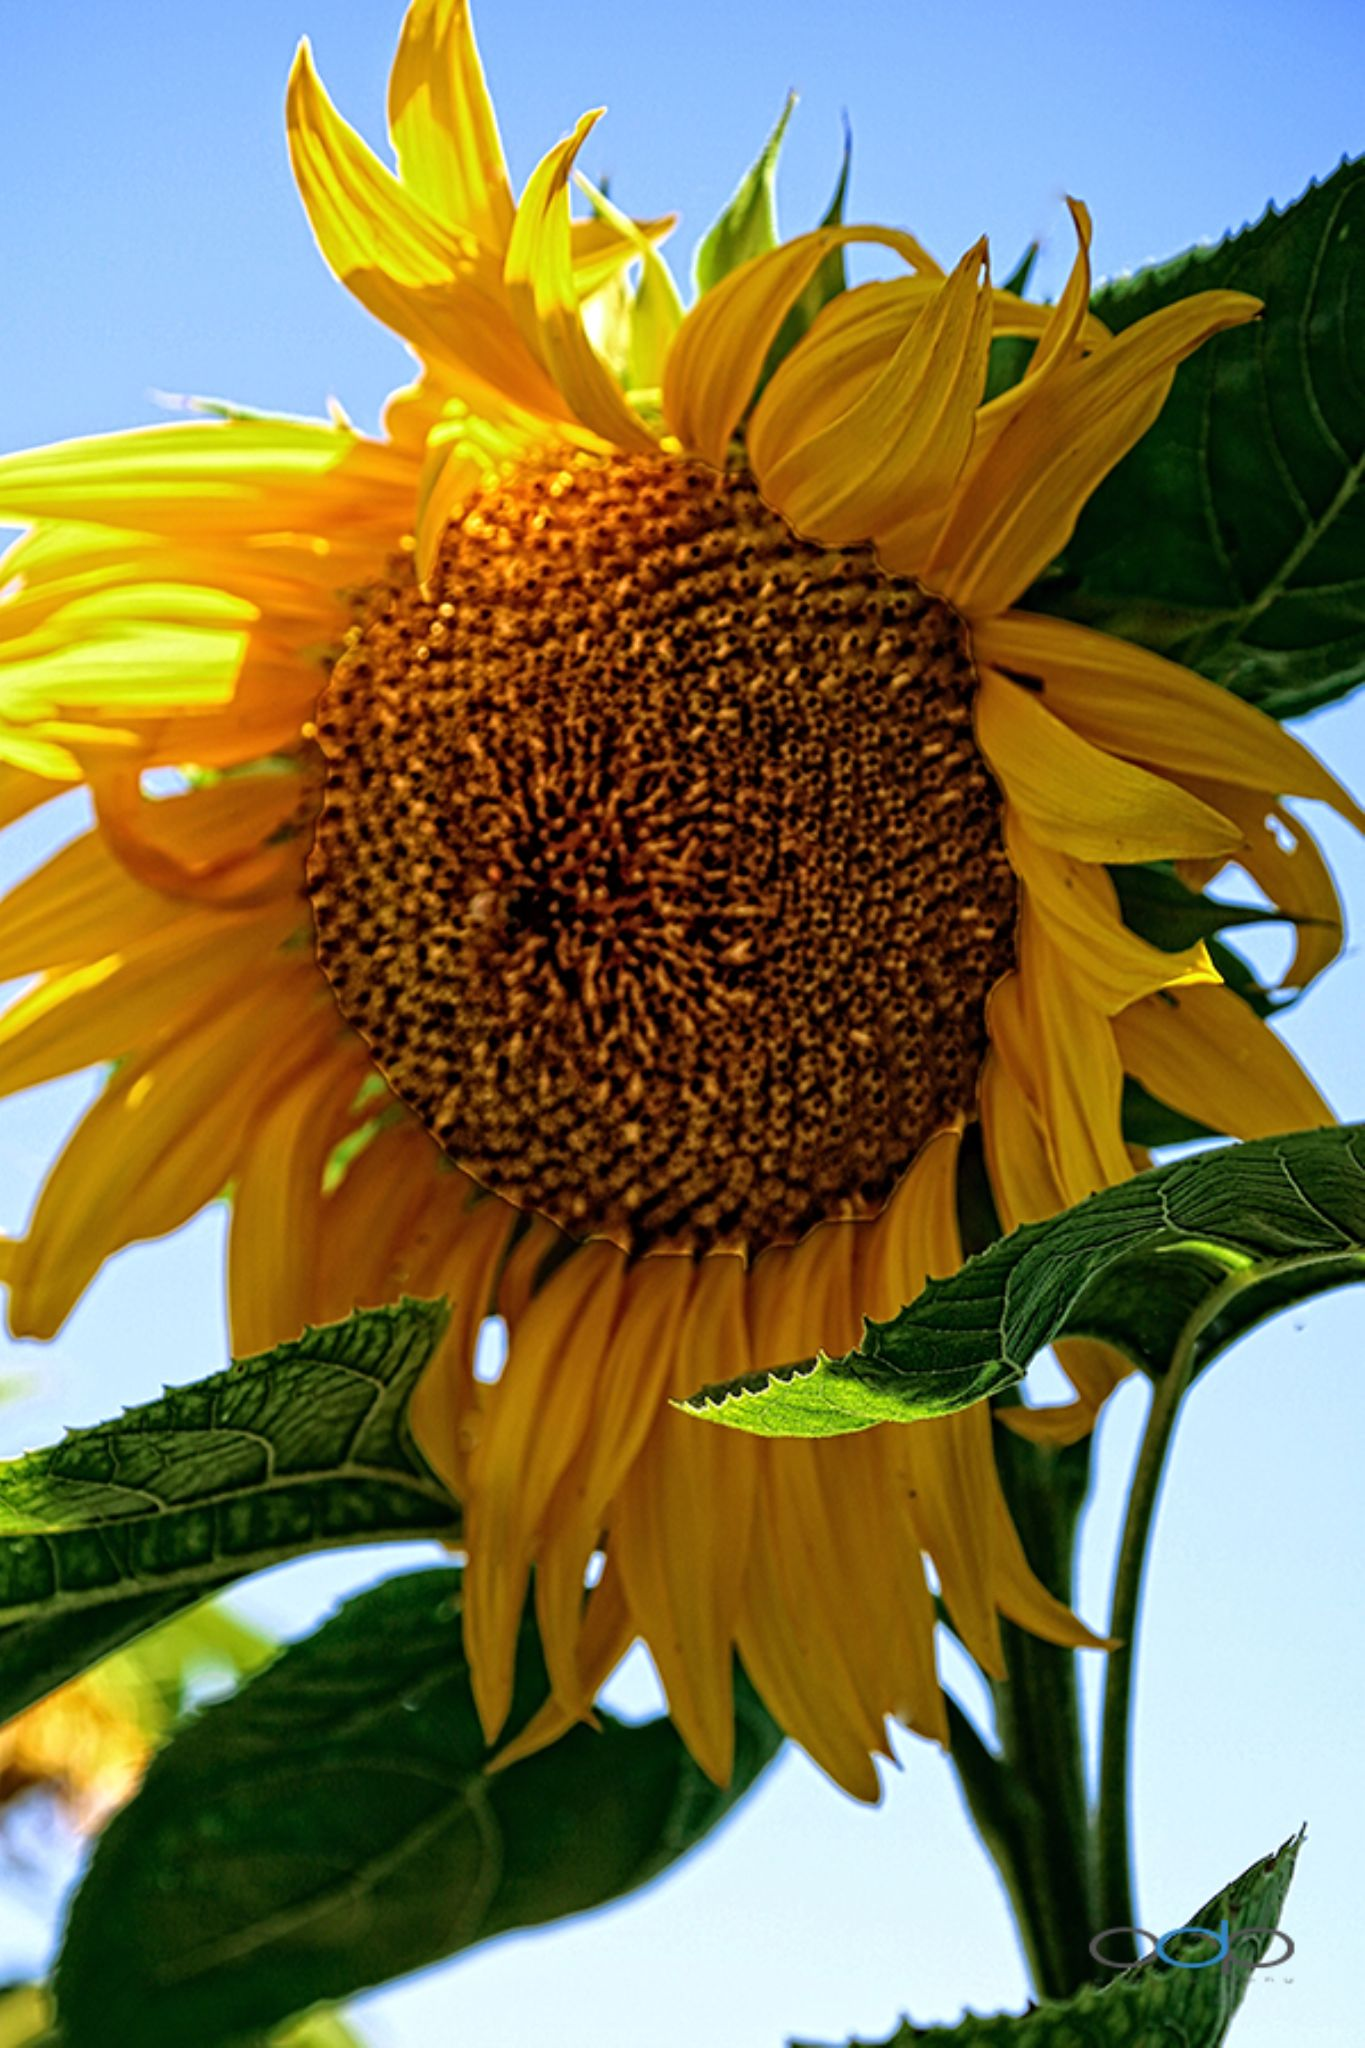 Monster sunflower in the herb garden at Cakebread Cellars winery . . . by OneDigitalPlacePhotography